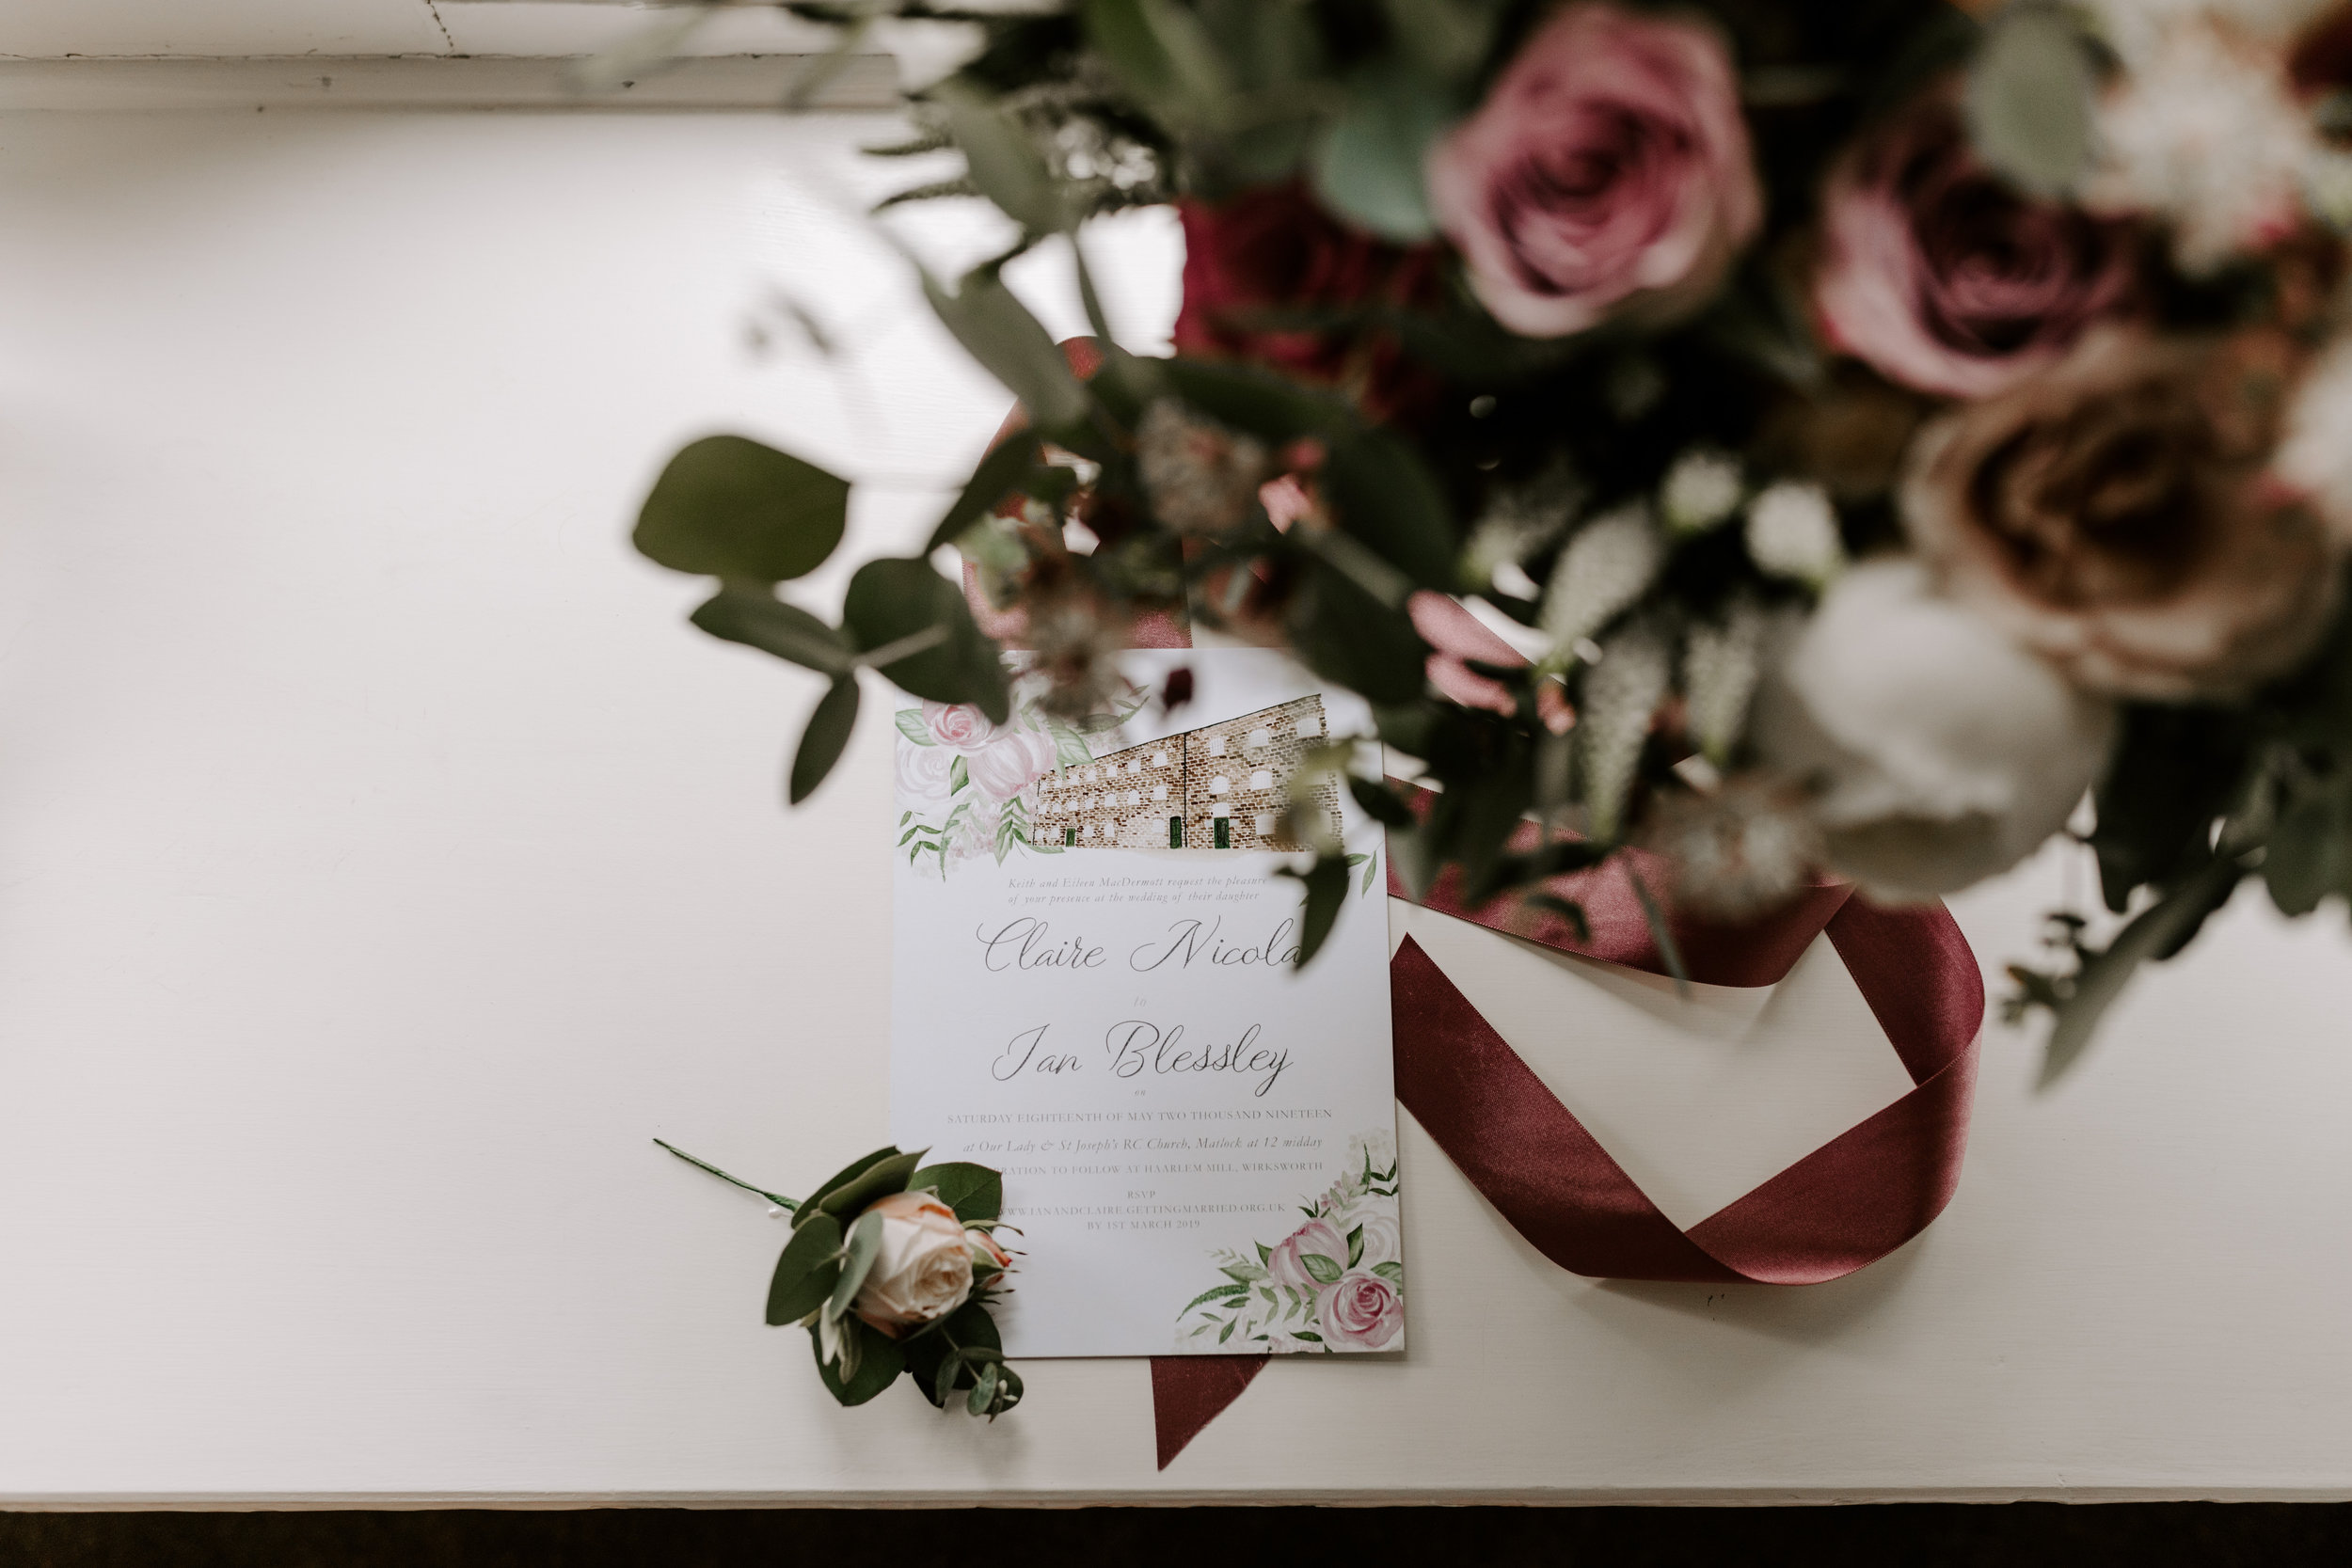 Claire and Ian wedding day (4 of 41).jpg